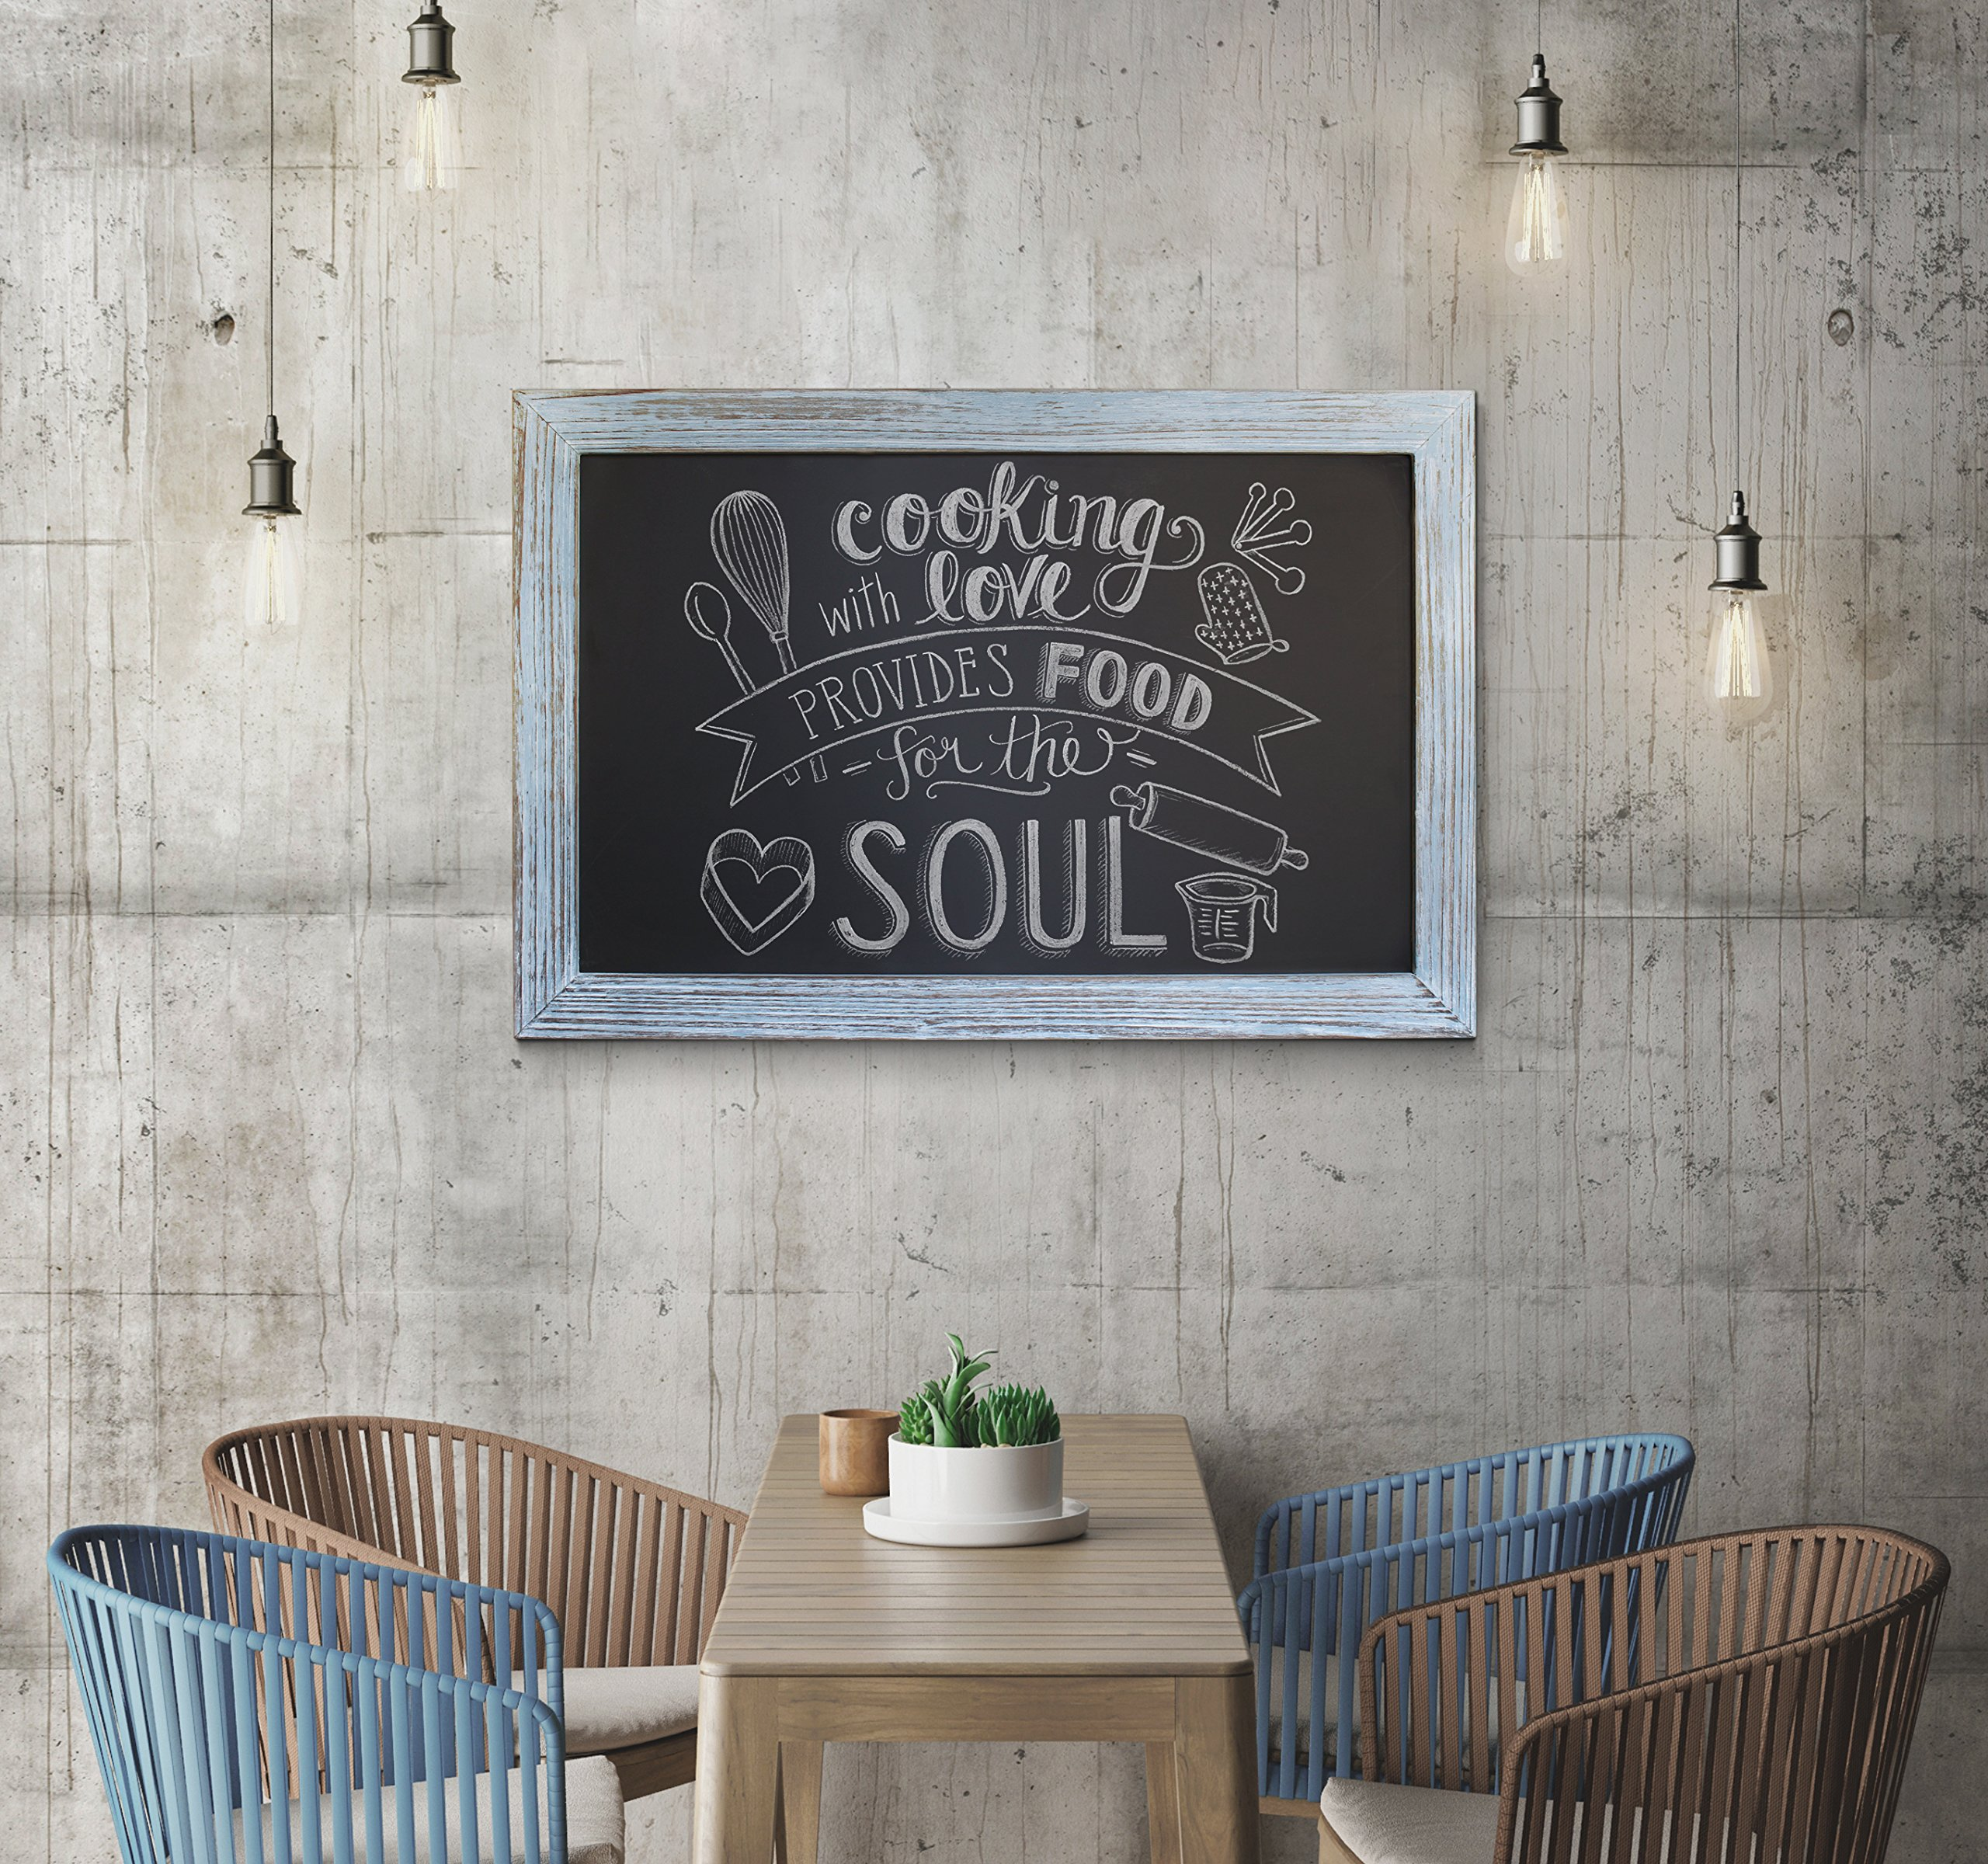 Rustic Blue Magnetic Wall Chalkboard, Extra Large Size 20'' x 30'', Framed Decorative Chalkboard - Great for Kitchen Decor, Weddings, Restaurant Menus and More! … (20''x30'') by HBCY Creations (Image #7)